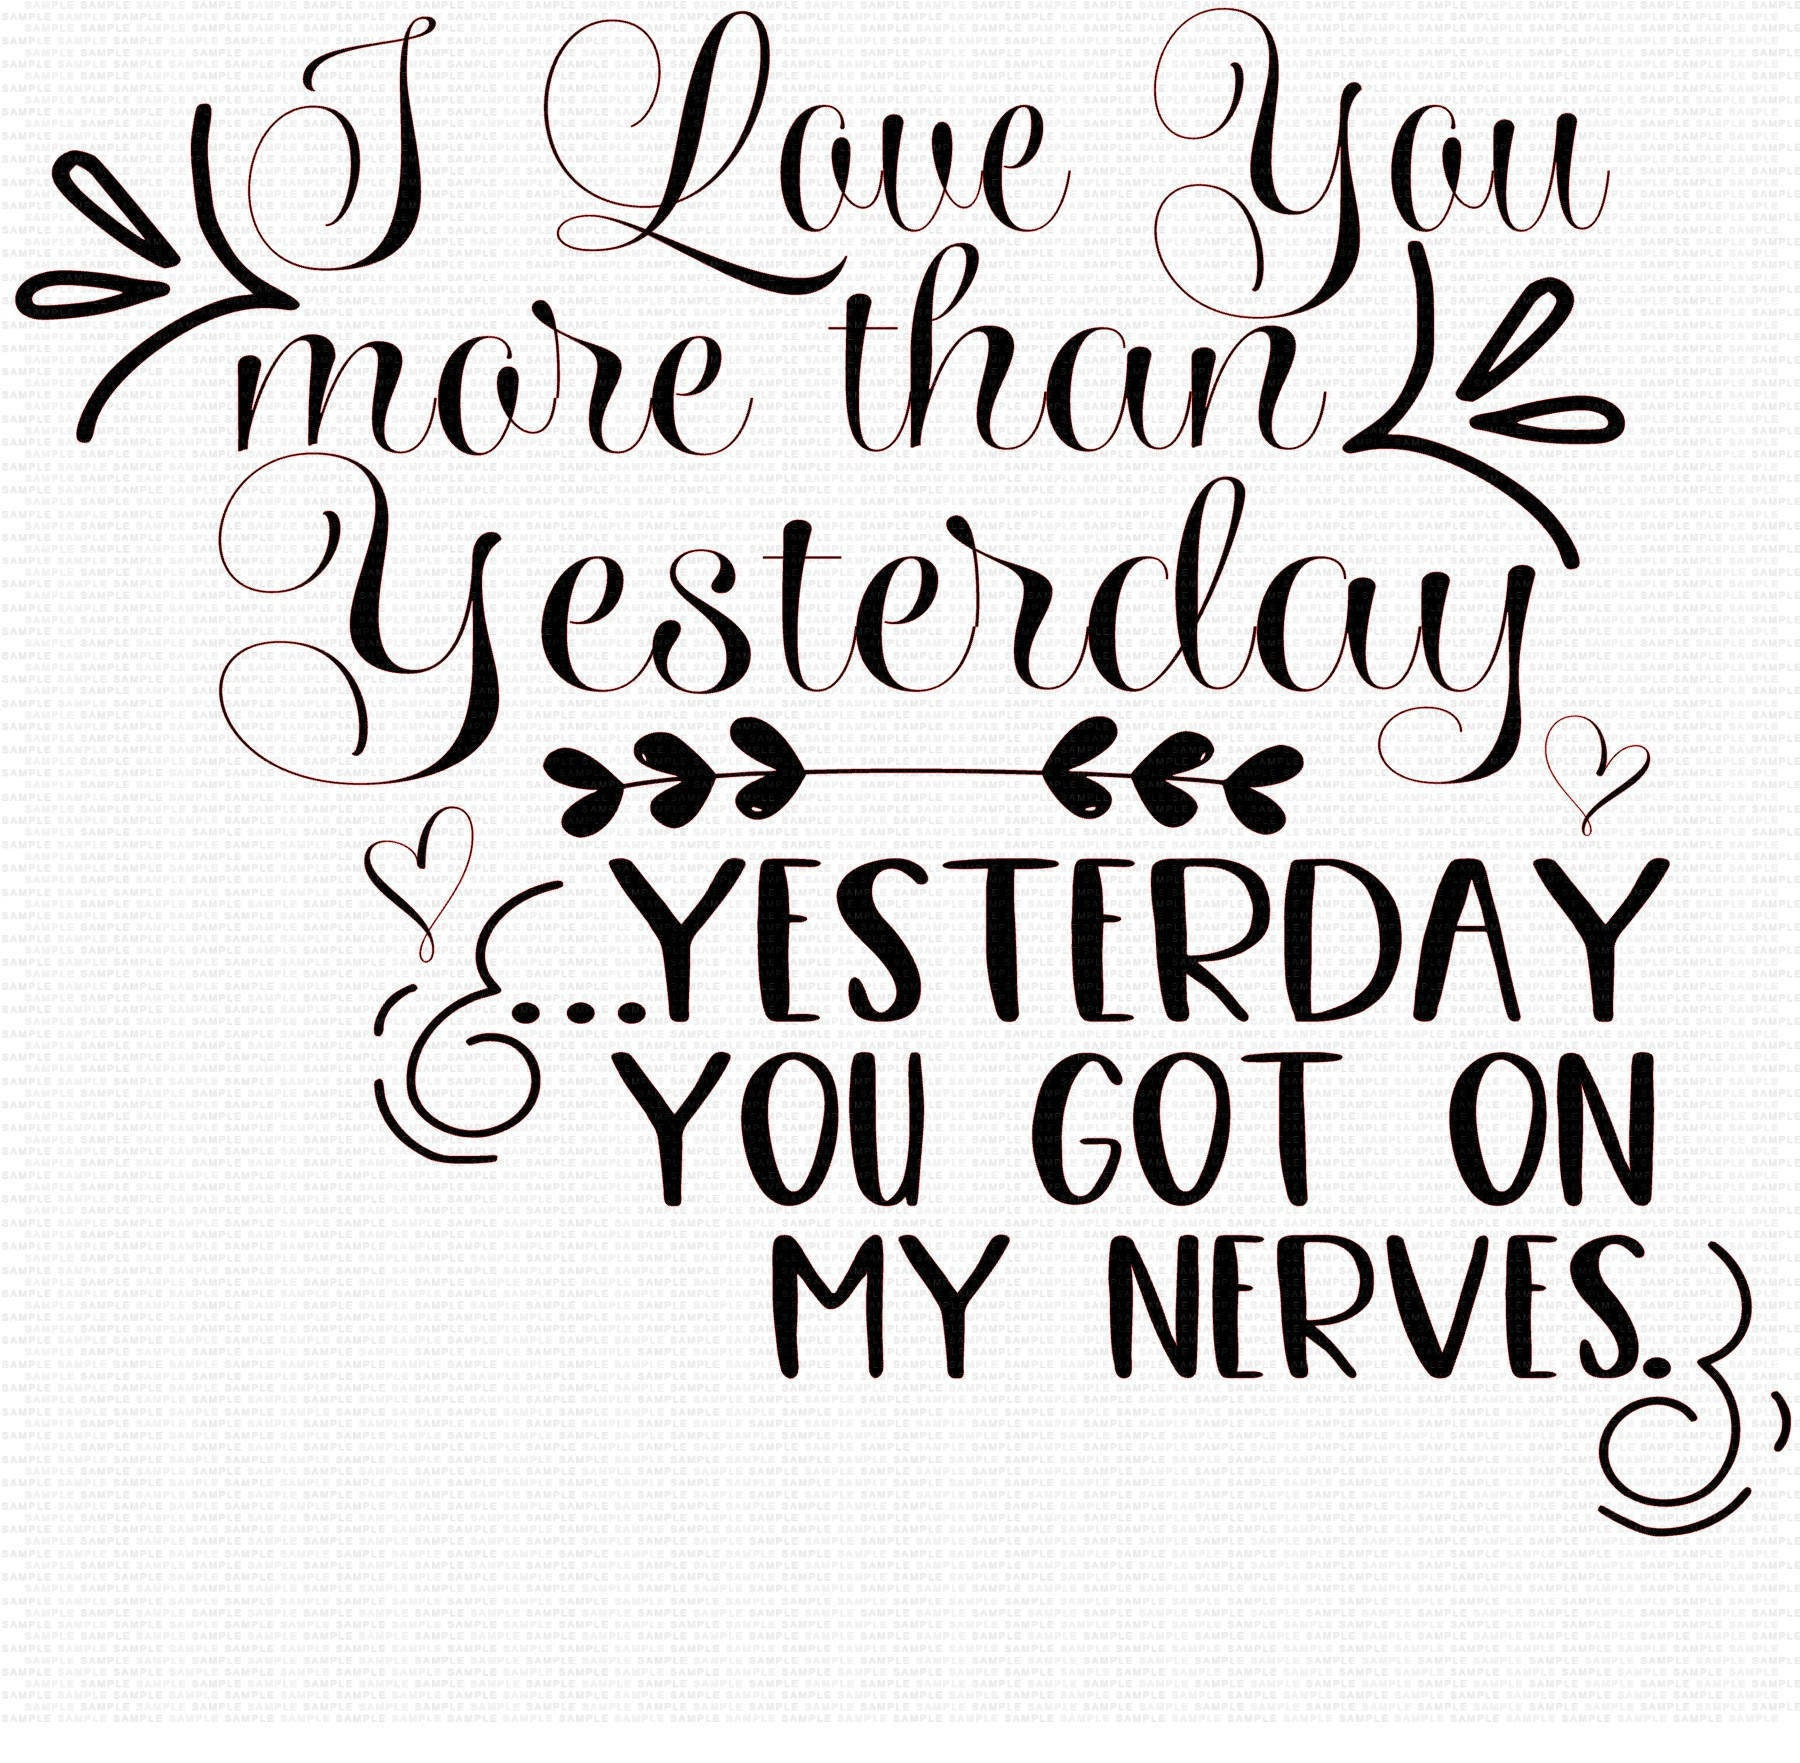 I Love You More Than Funny Quotes Love You More Than Yesterday Svg Get On My Nerves Svg Quotes